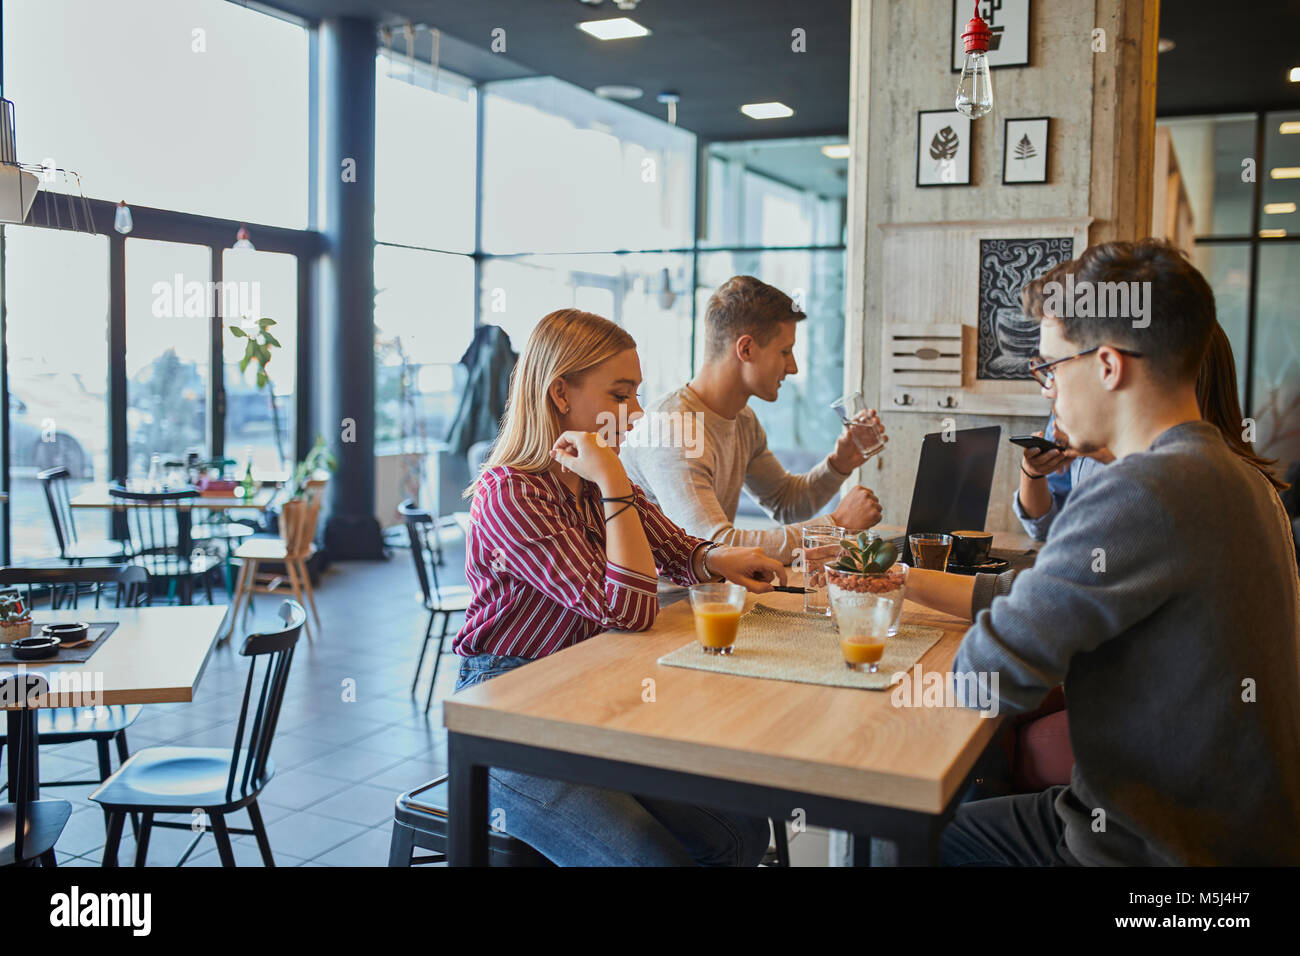 Group of friends sitting together in a cafe with laptop and drinks - Stock Image